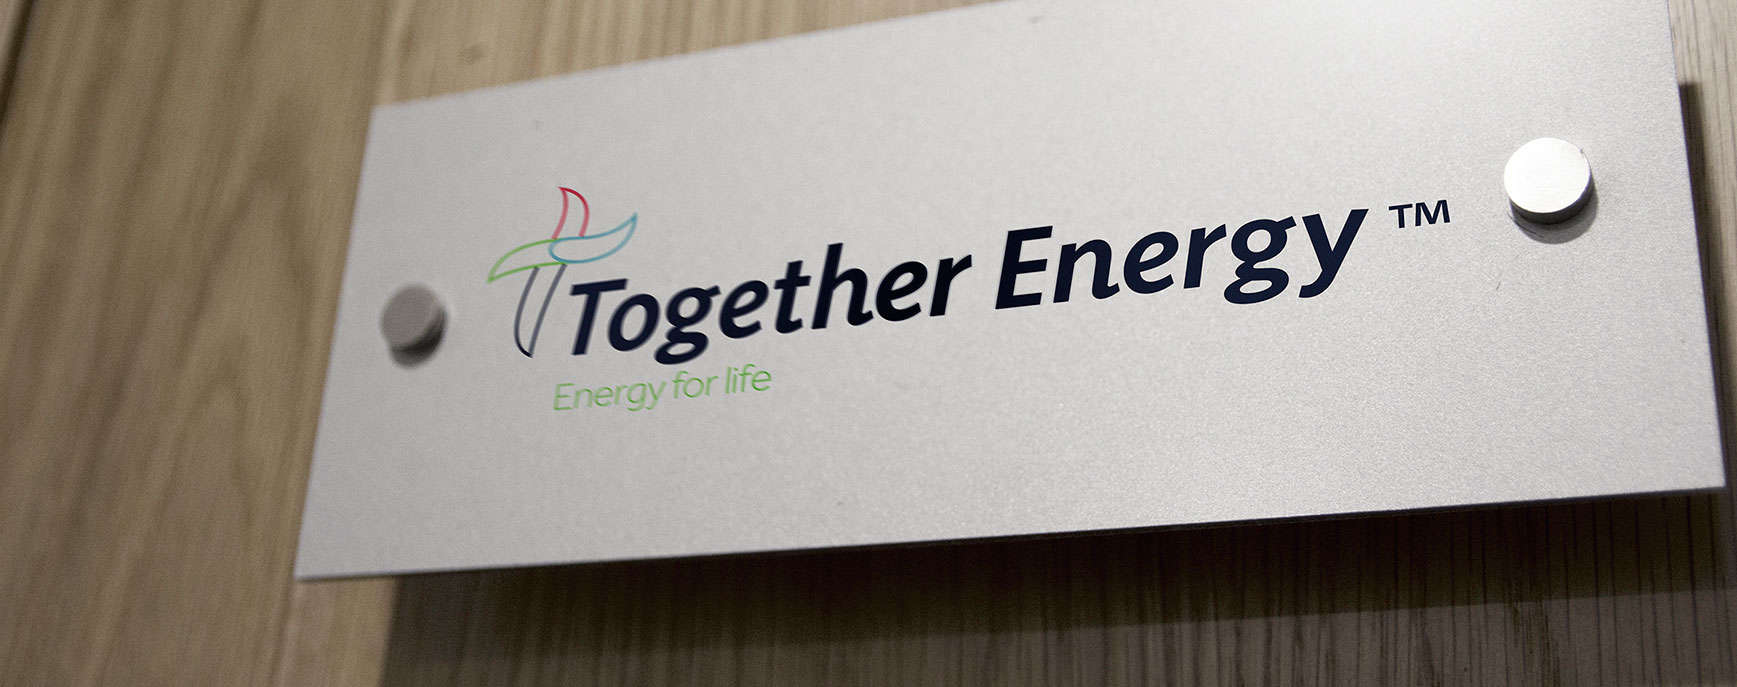 Together Energy Sign 1